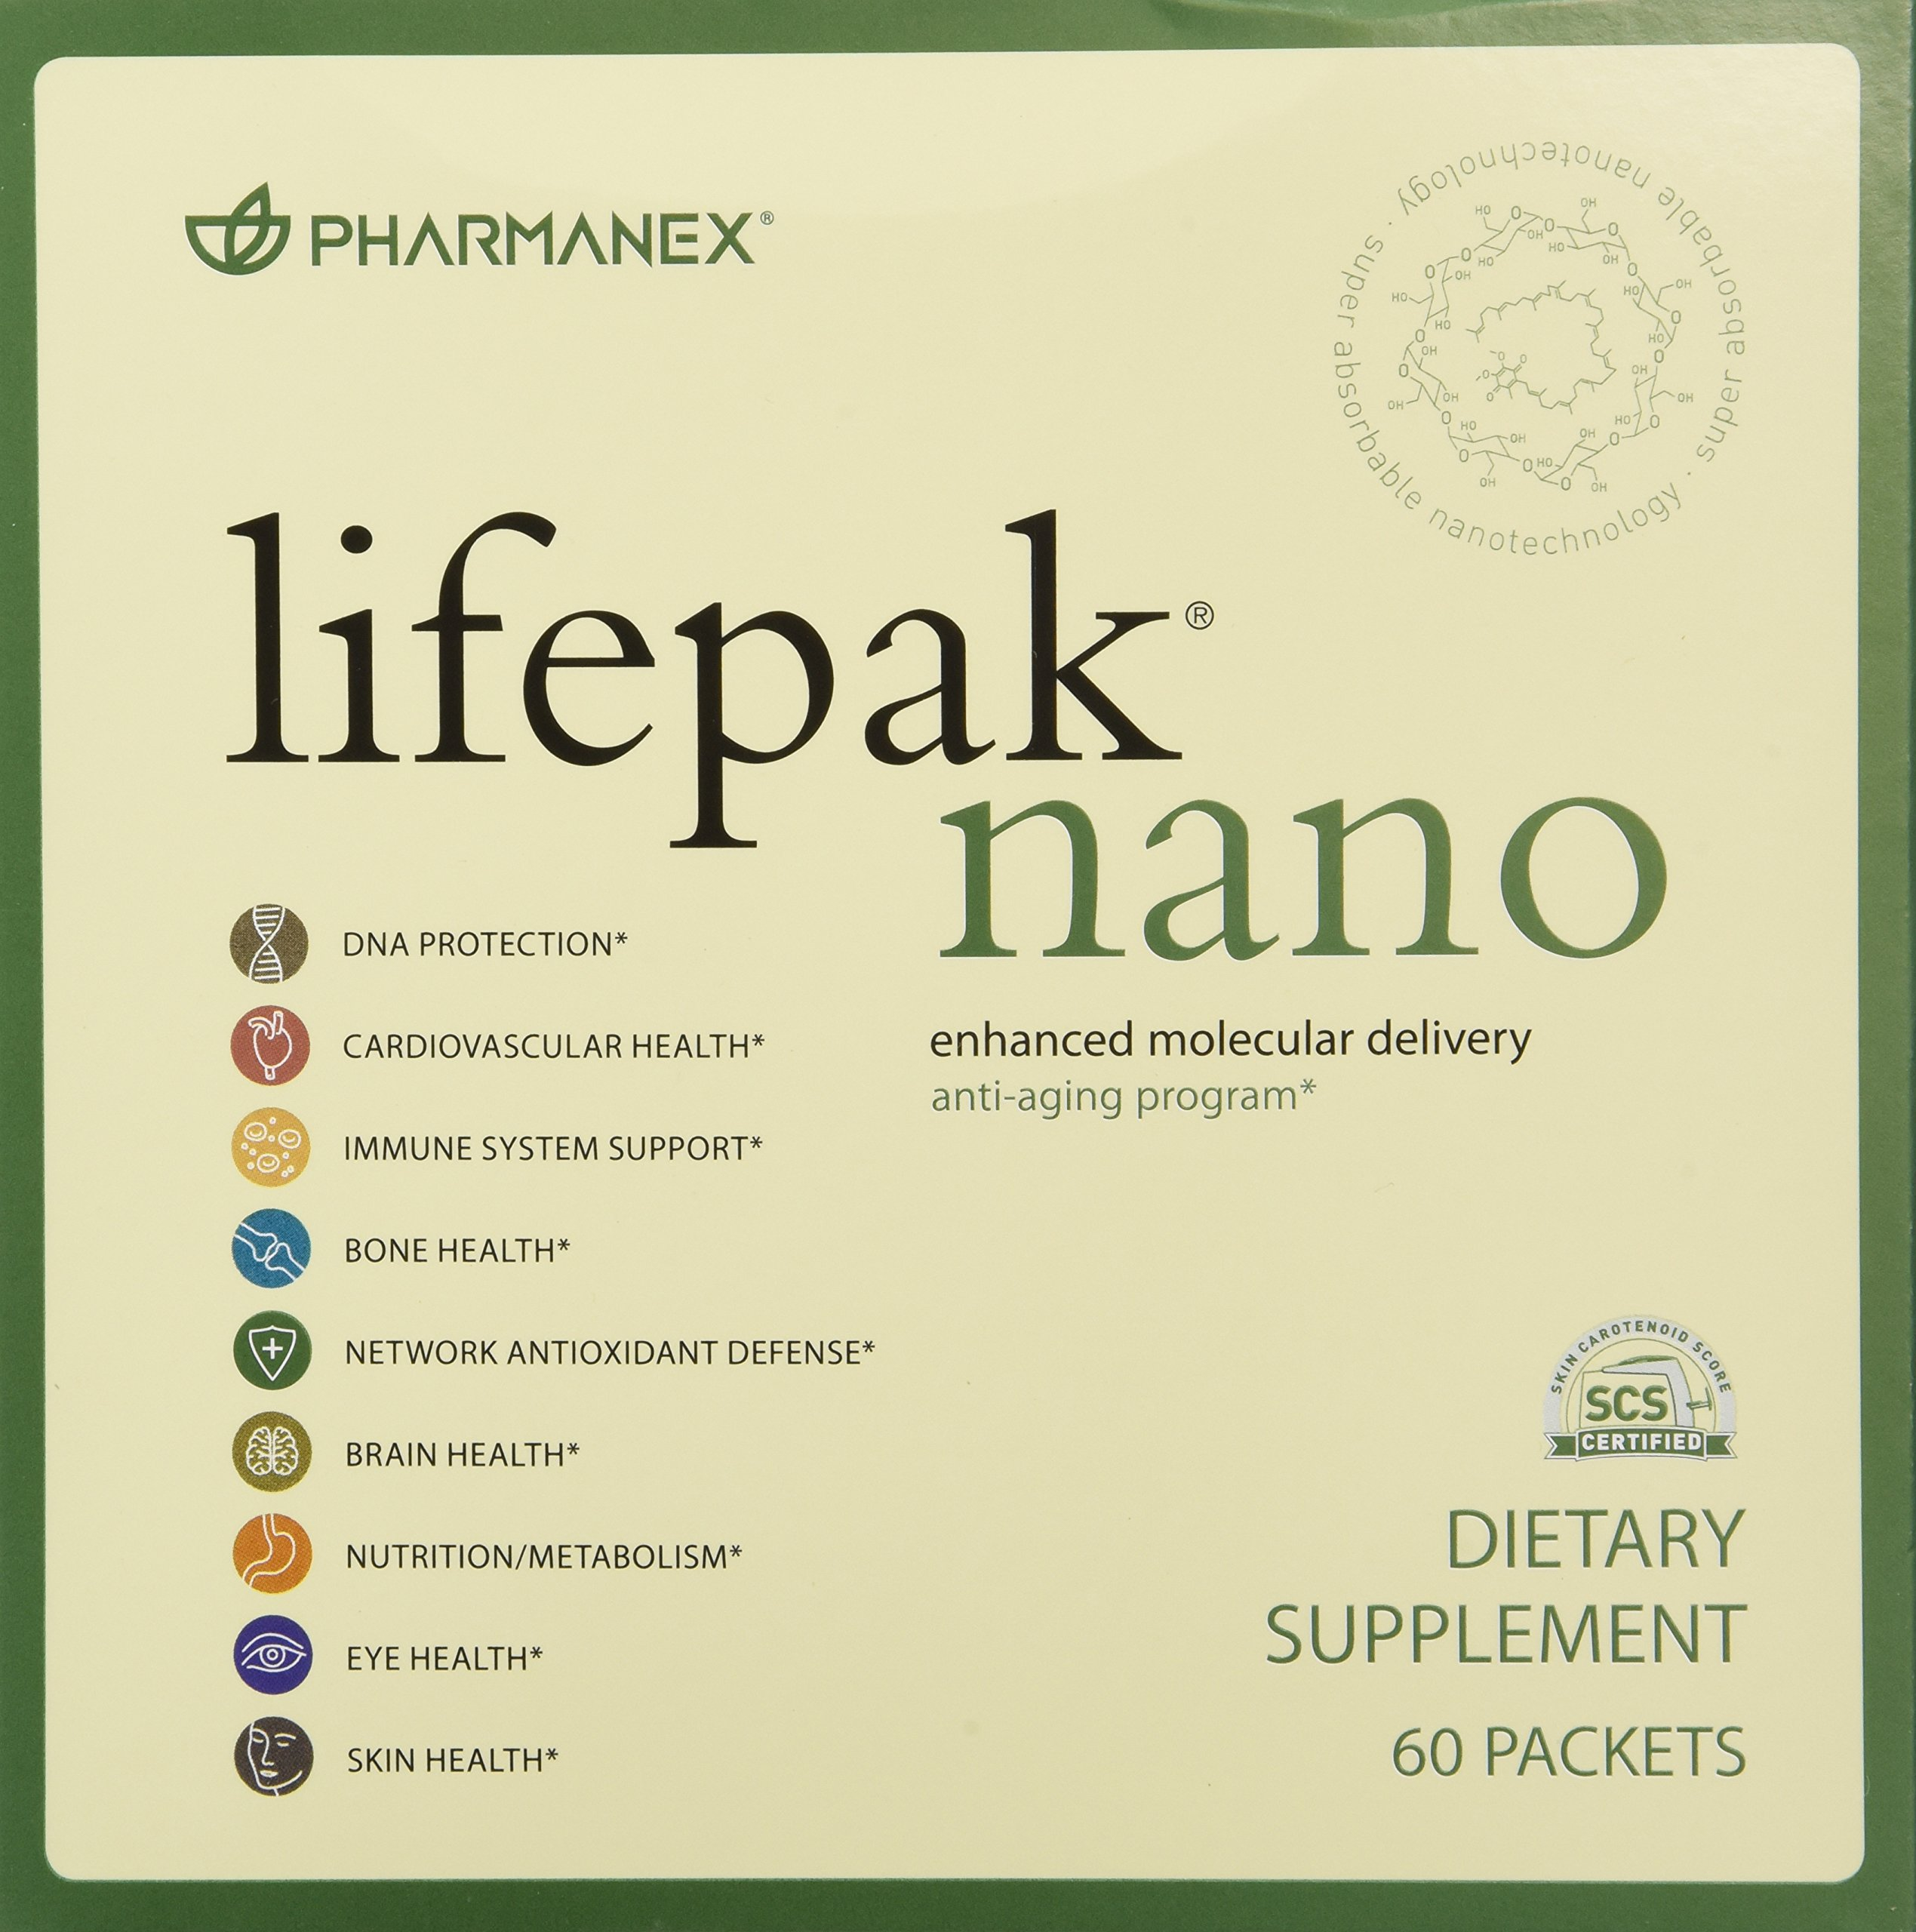 Pharmanex LifePak Nano anti-aging dietary supplement - 60 packets by LifePak NANO (Image #1)